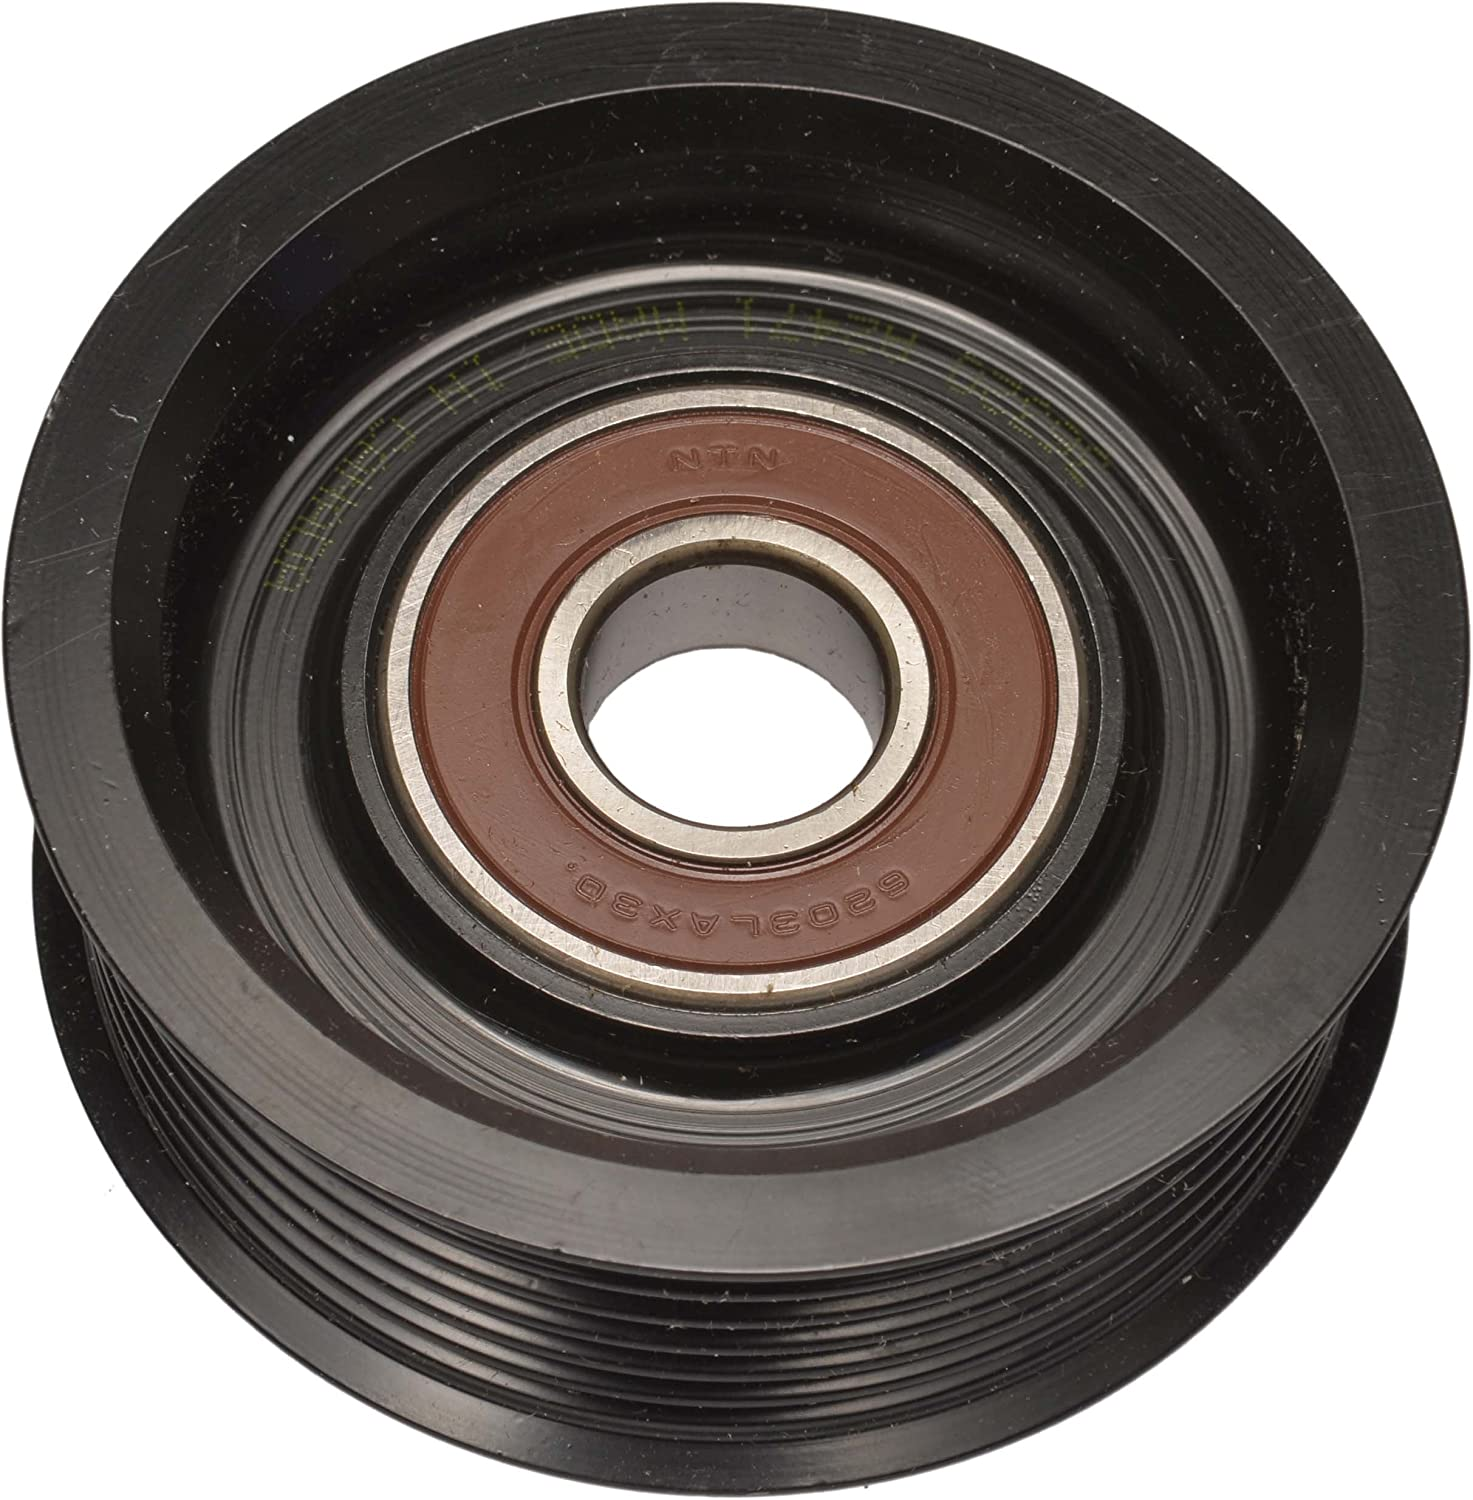 Continental In stock 49198 Pulley Accu-Drive Max 69% OFF